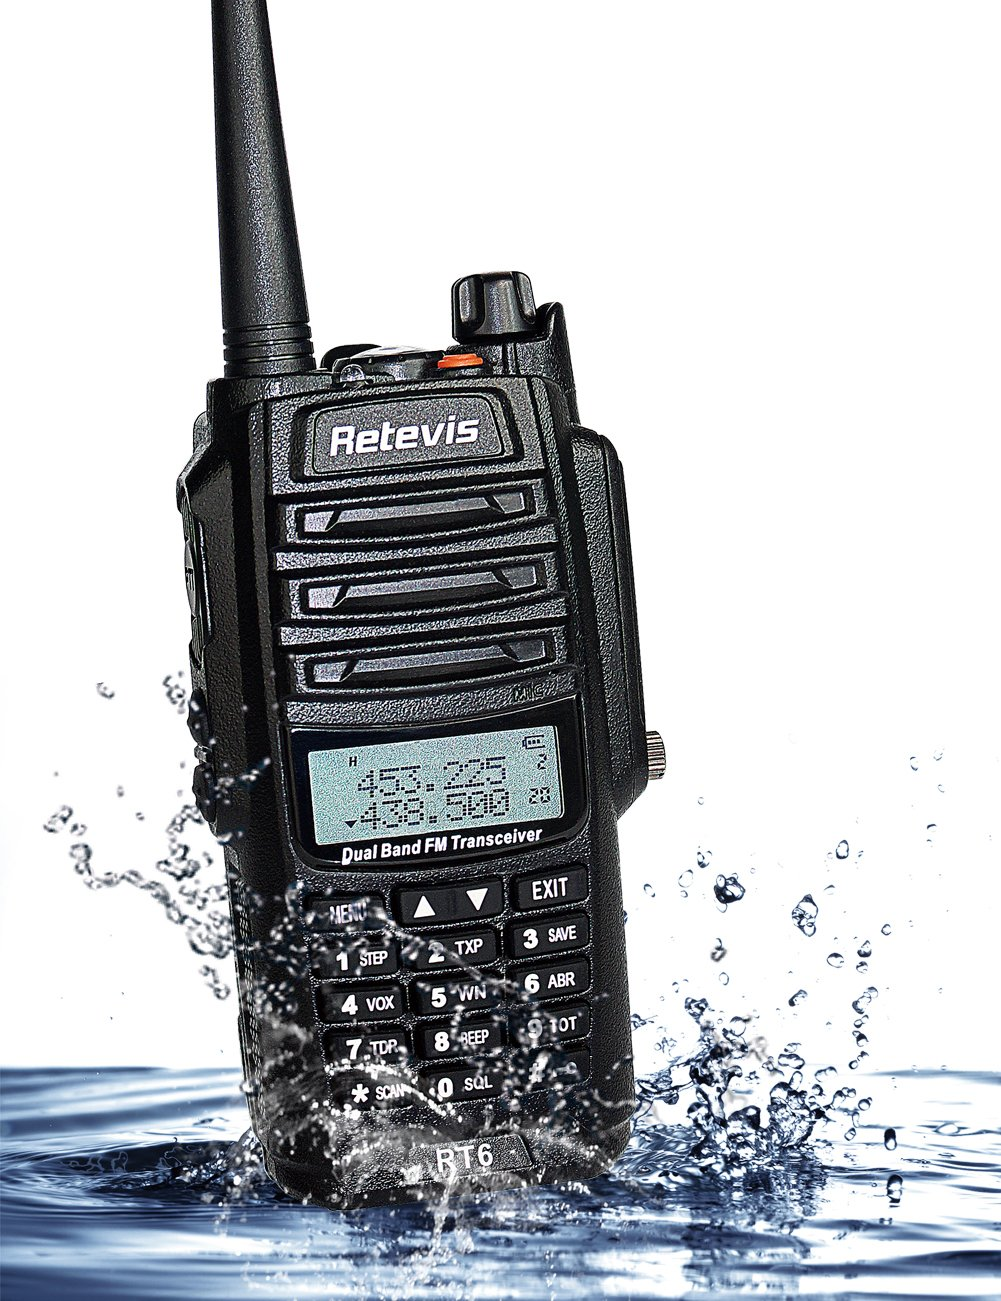 Retevis Rt6 Walkie Talkies Ip67 Waterproof Dual Band Vhf Mediumpower Fm Transmitter Eeweb Community Uhf 2 Way Radio With Earpiece2 Pack And Programming Cable1 Cell Phones